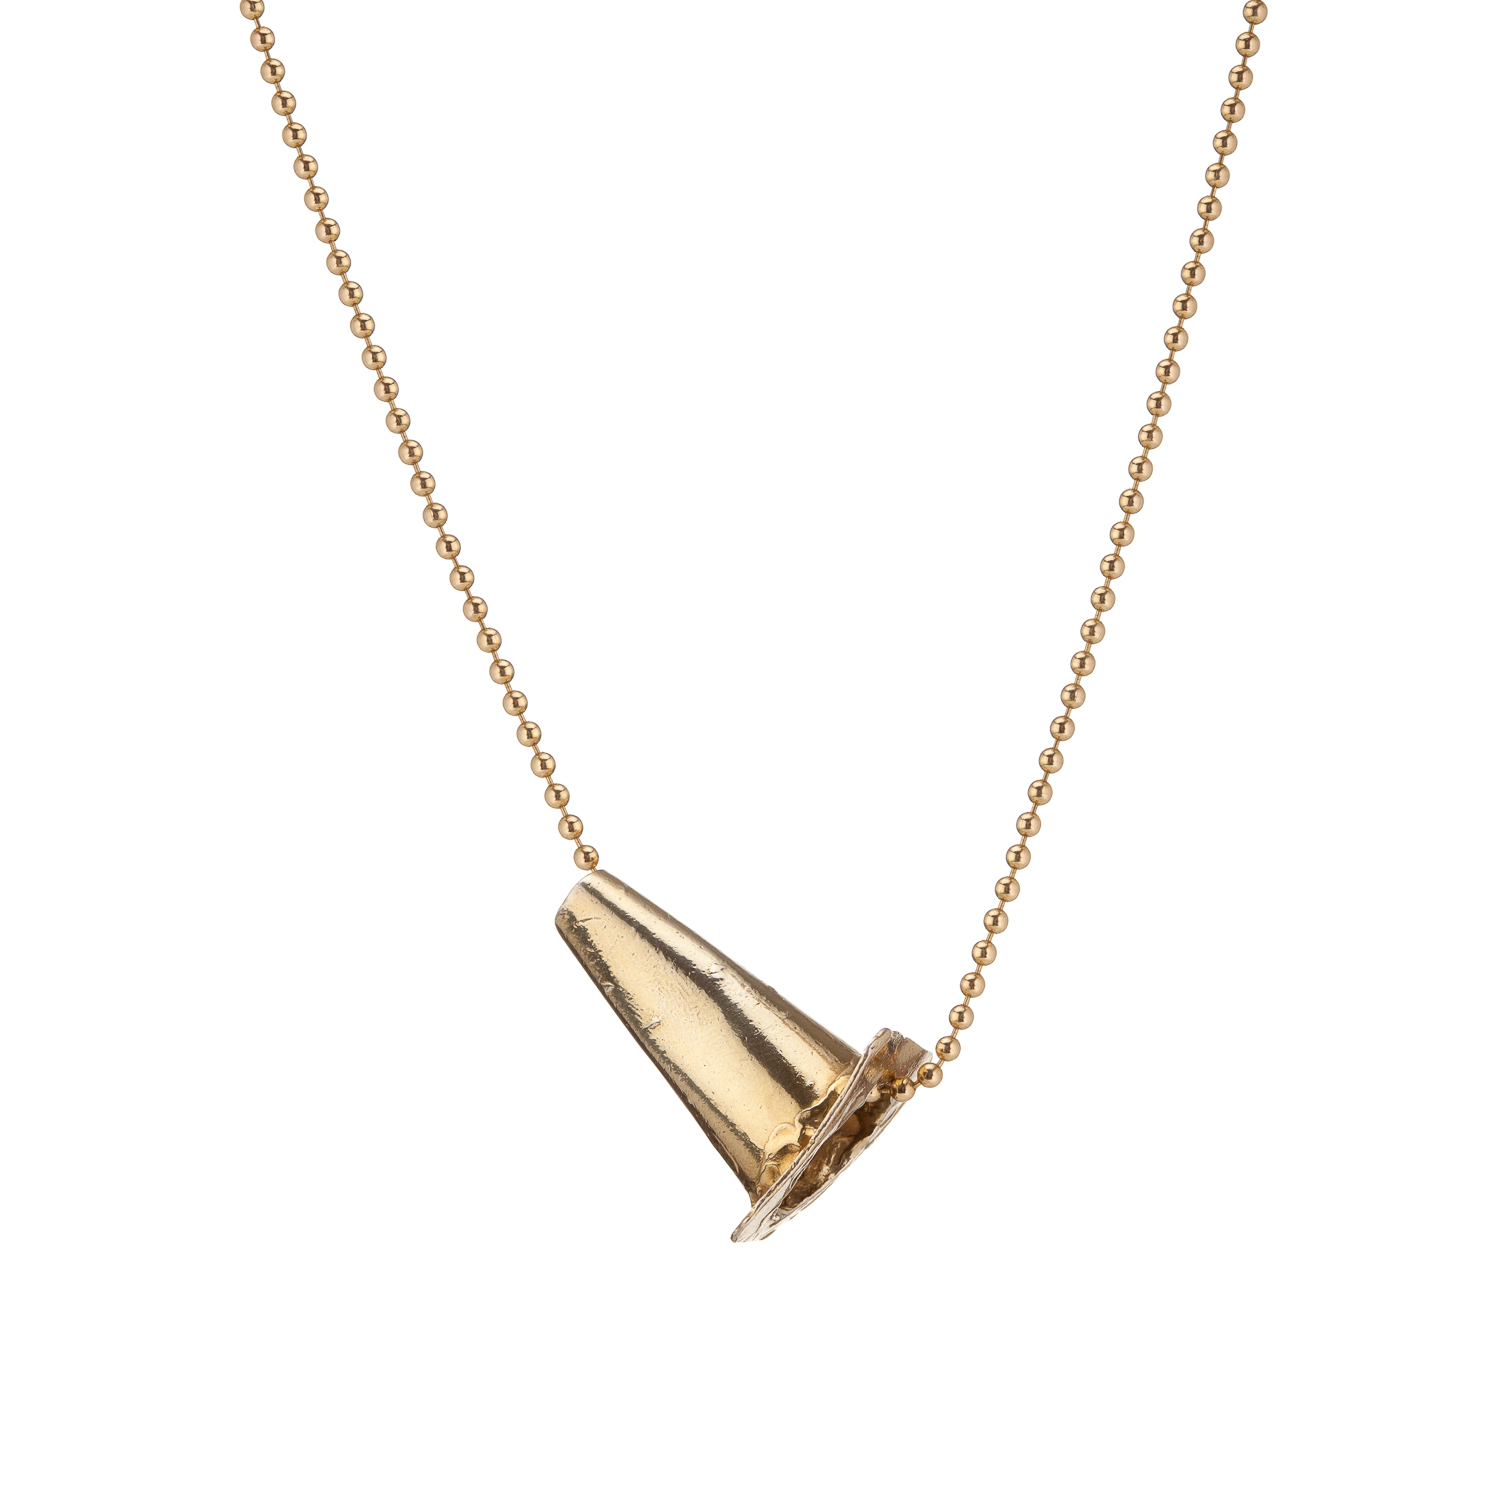 Traffic cone | 18k yellow gold